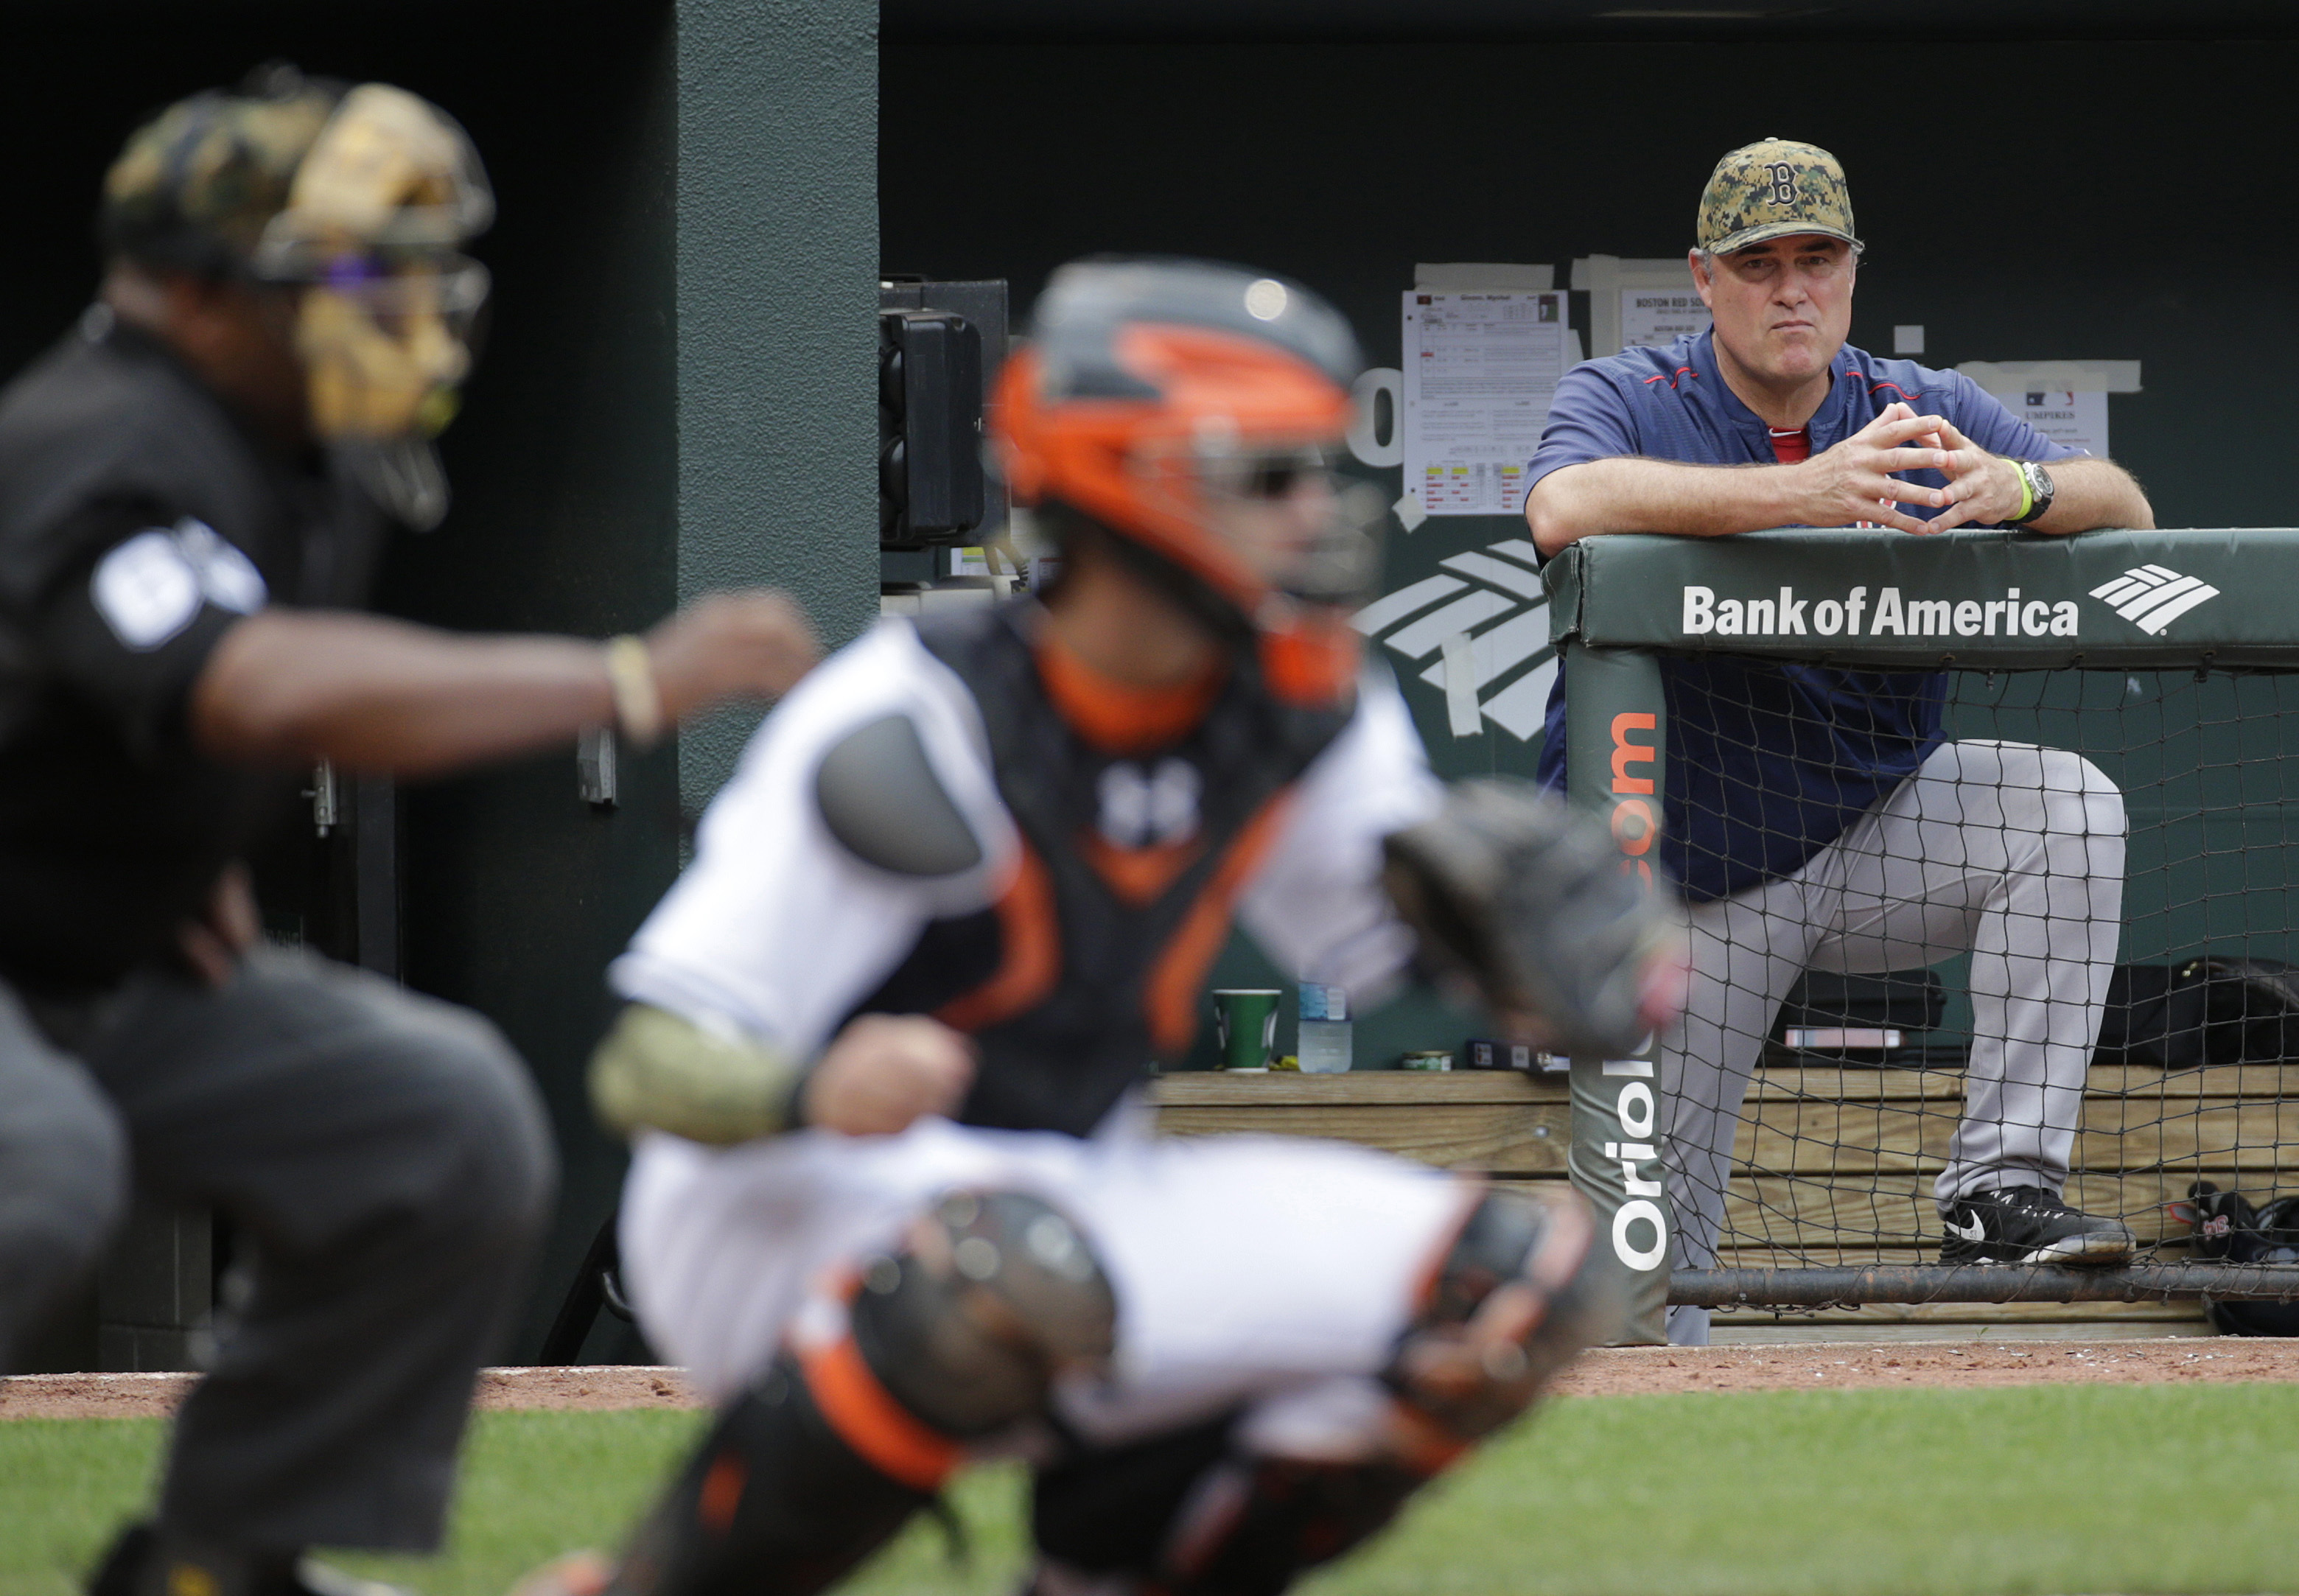 Boston Red Sox manager John Farrell, back right, is seen past home plate umpire Laz Diaz, left, and Baltimore Orioles catcher Caleb Joseph as he watches from the dugout in the ninth inning of a baseball game in Baltimore, Monday, May 30, 2016. (AP Photo/P